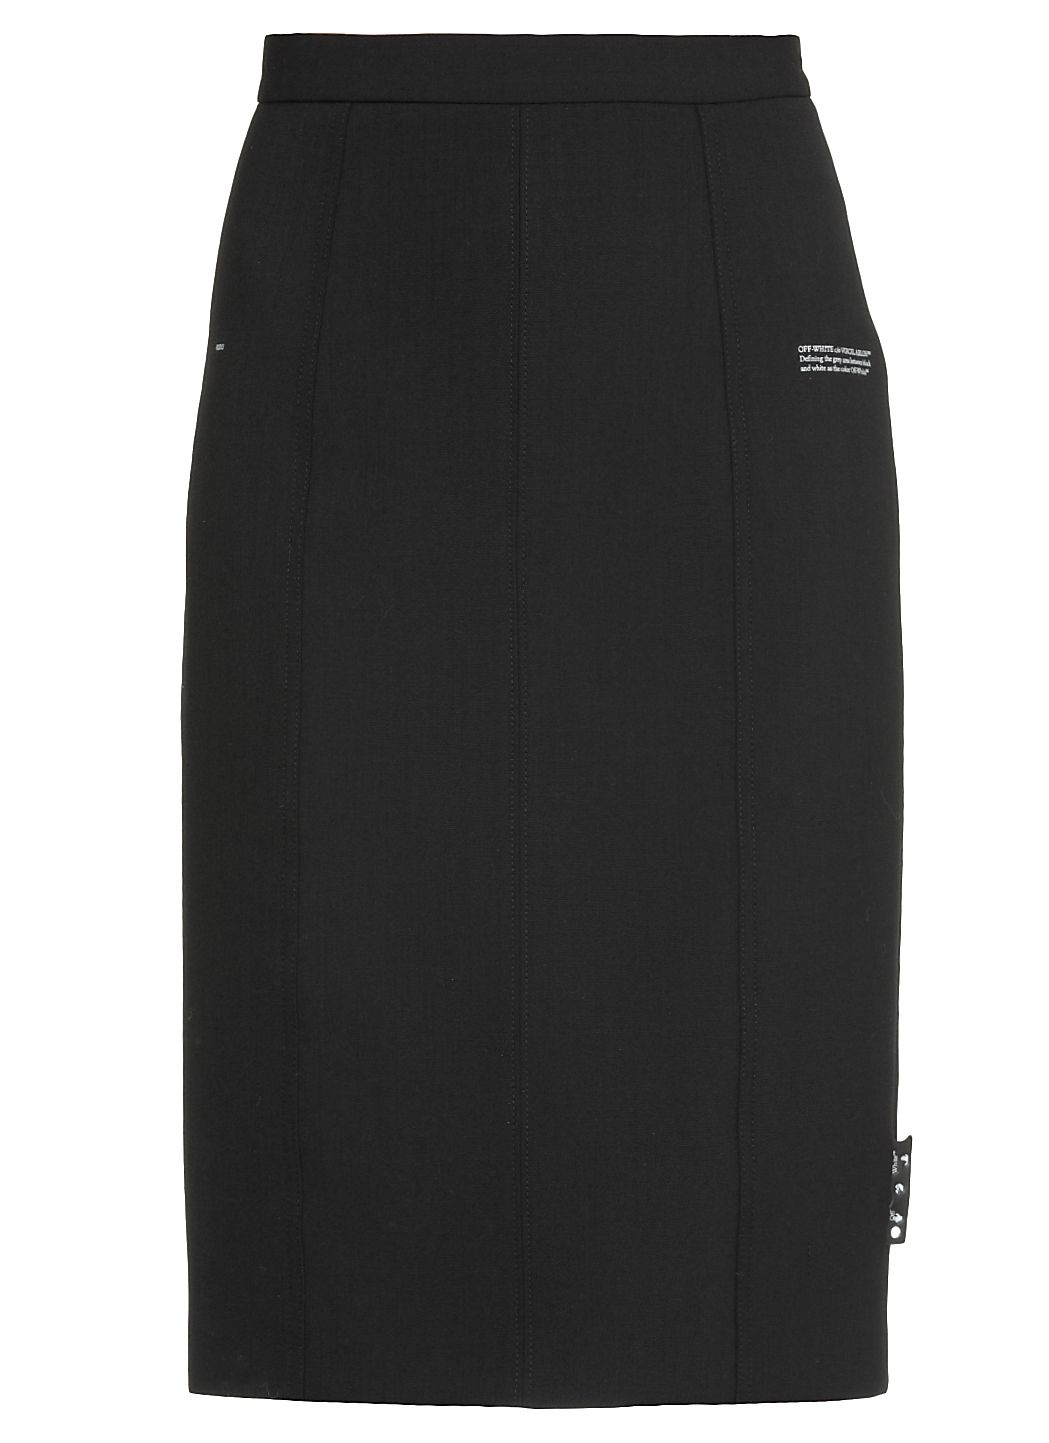 Tailored skirt